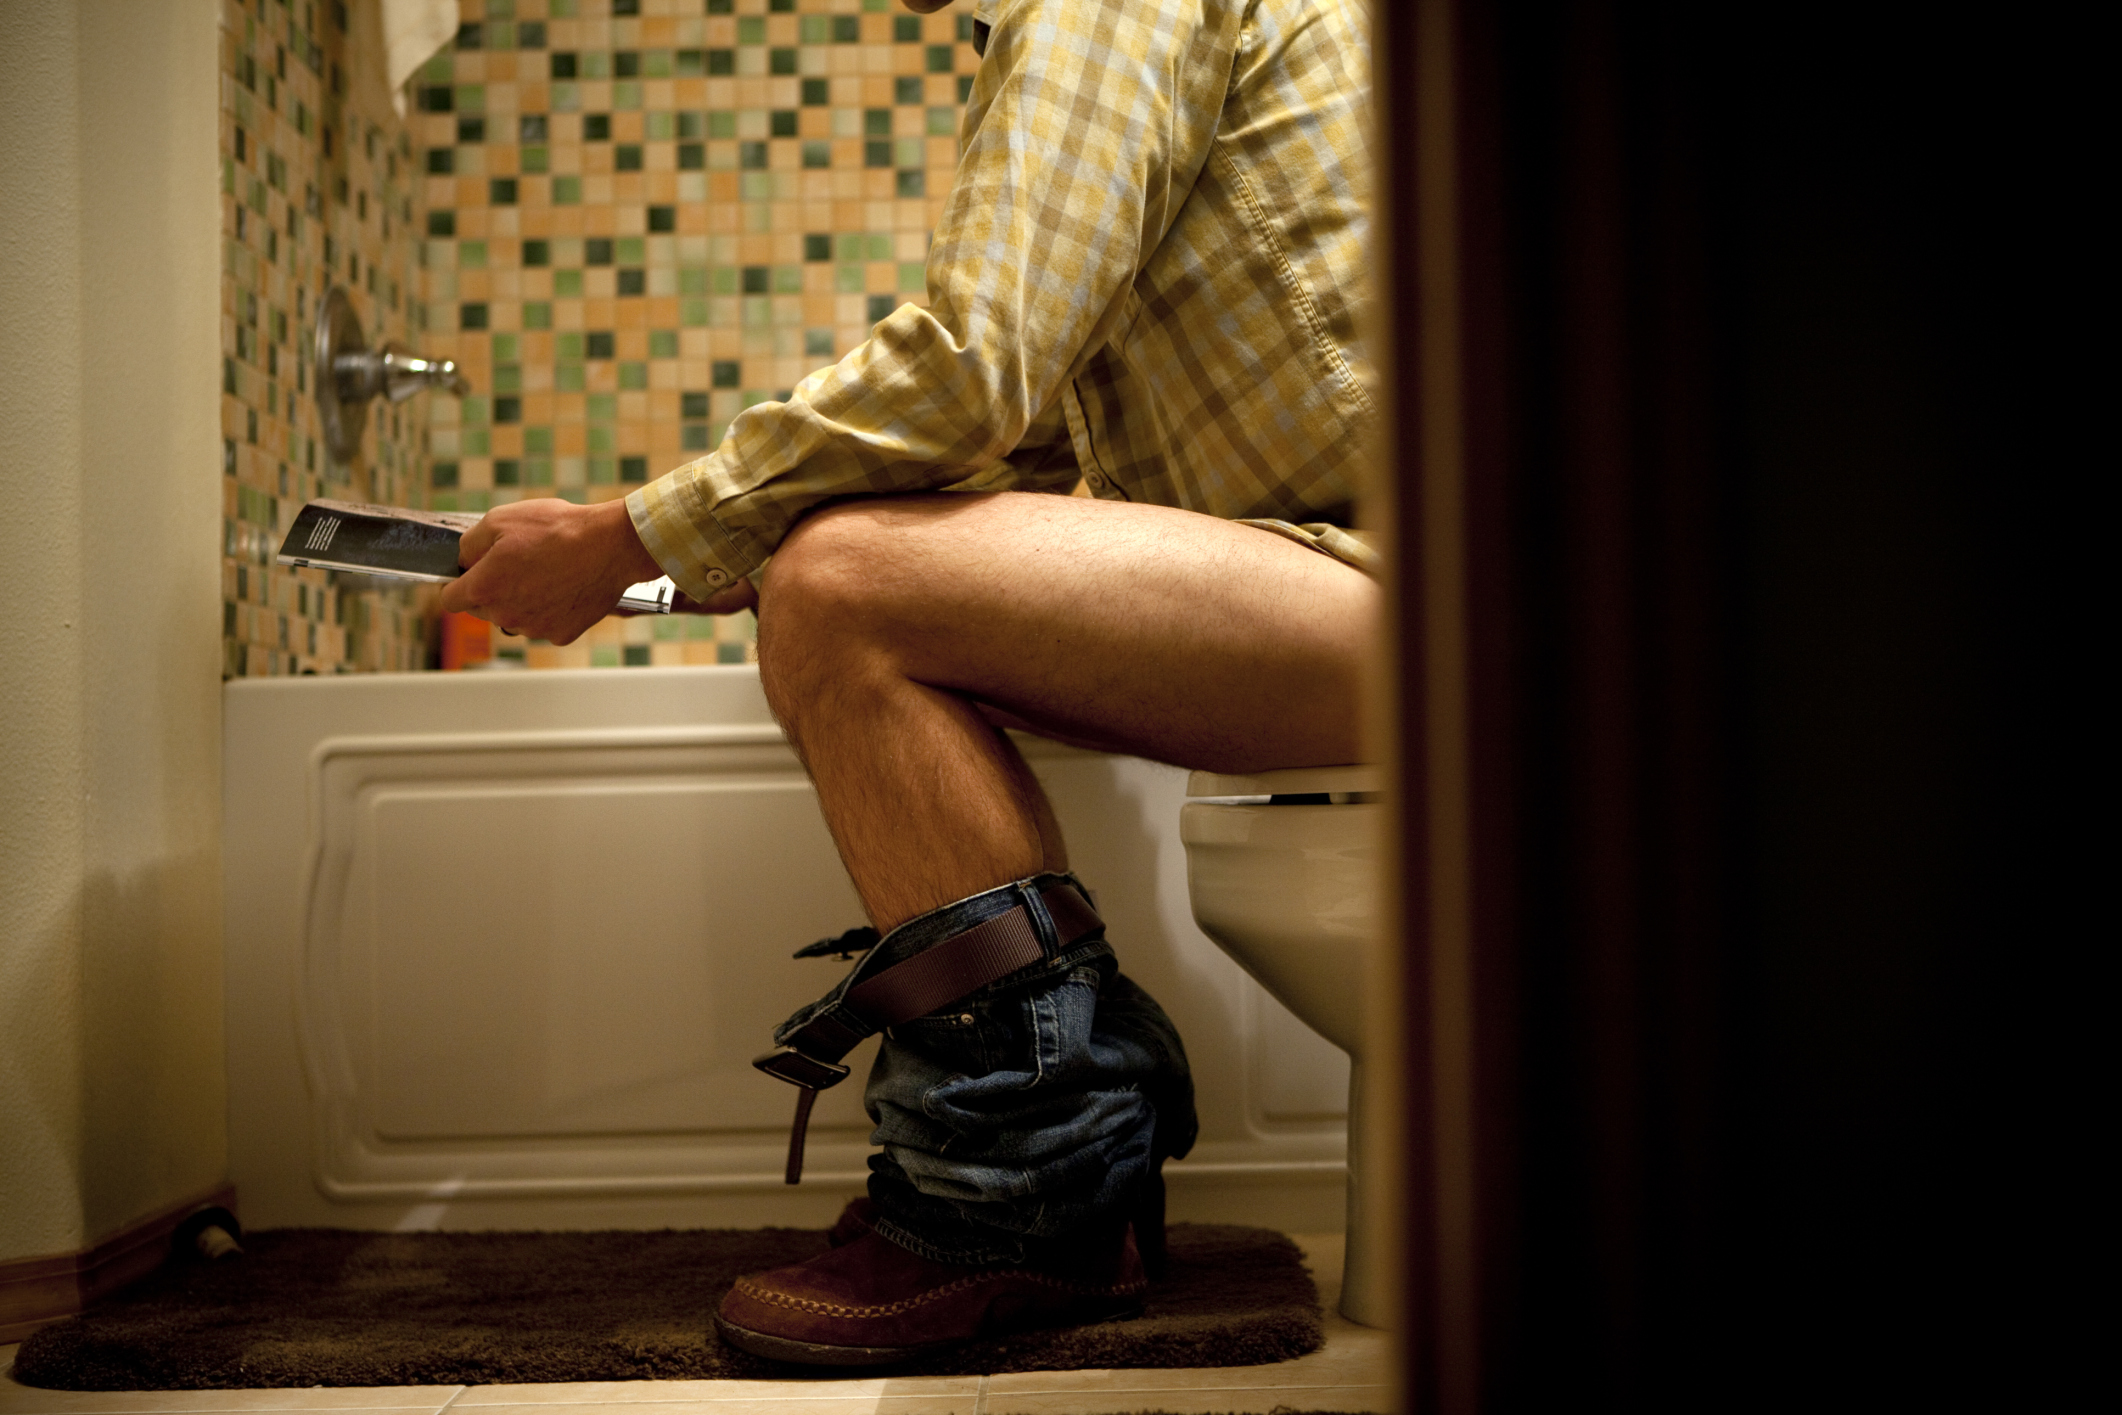 Male reading magazine on toilet.